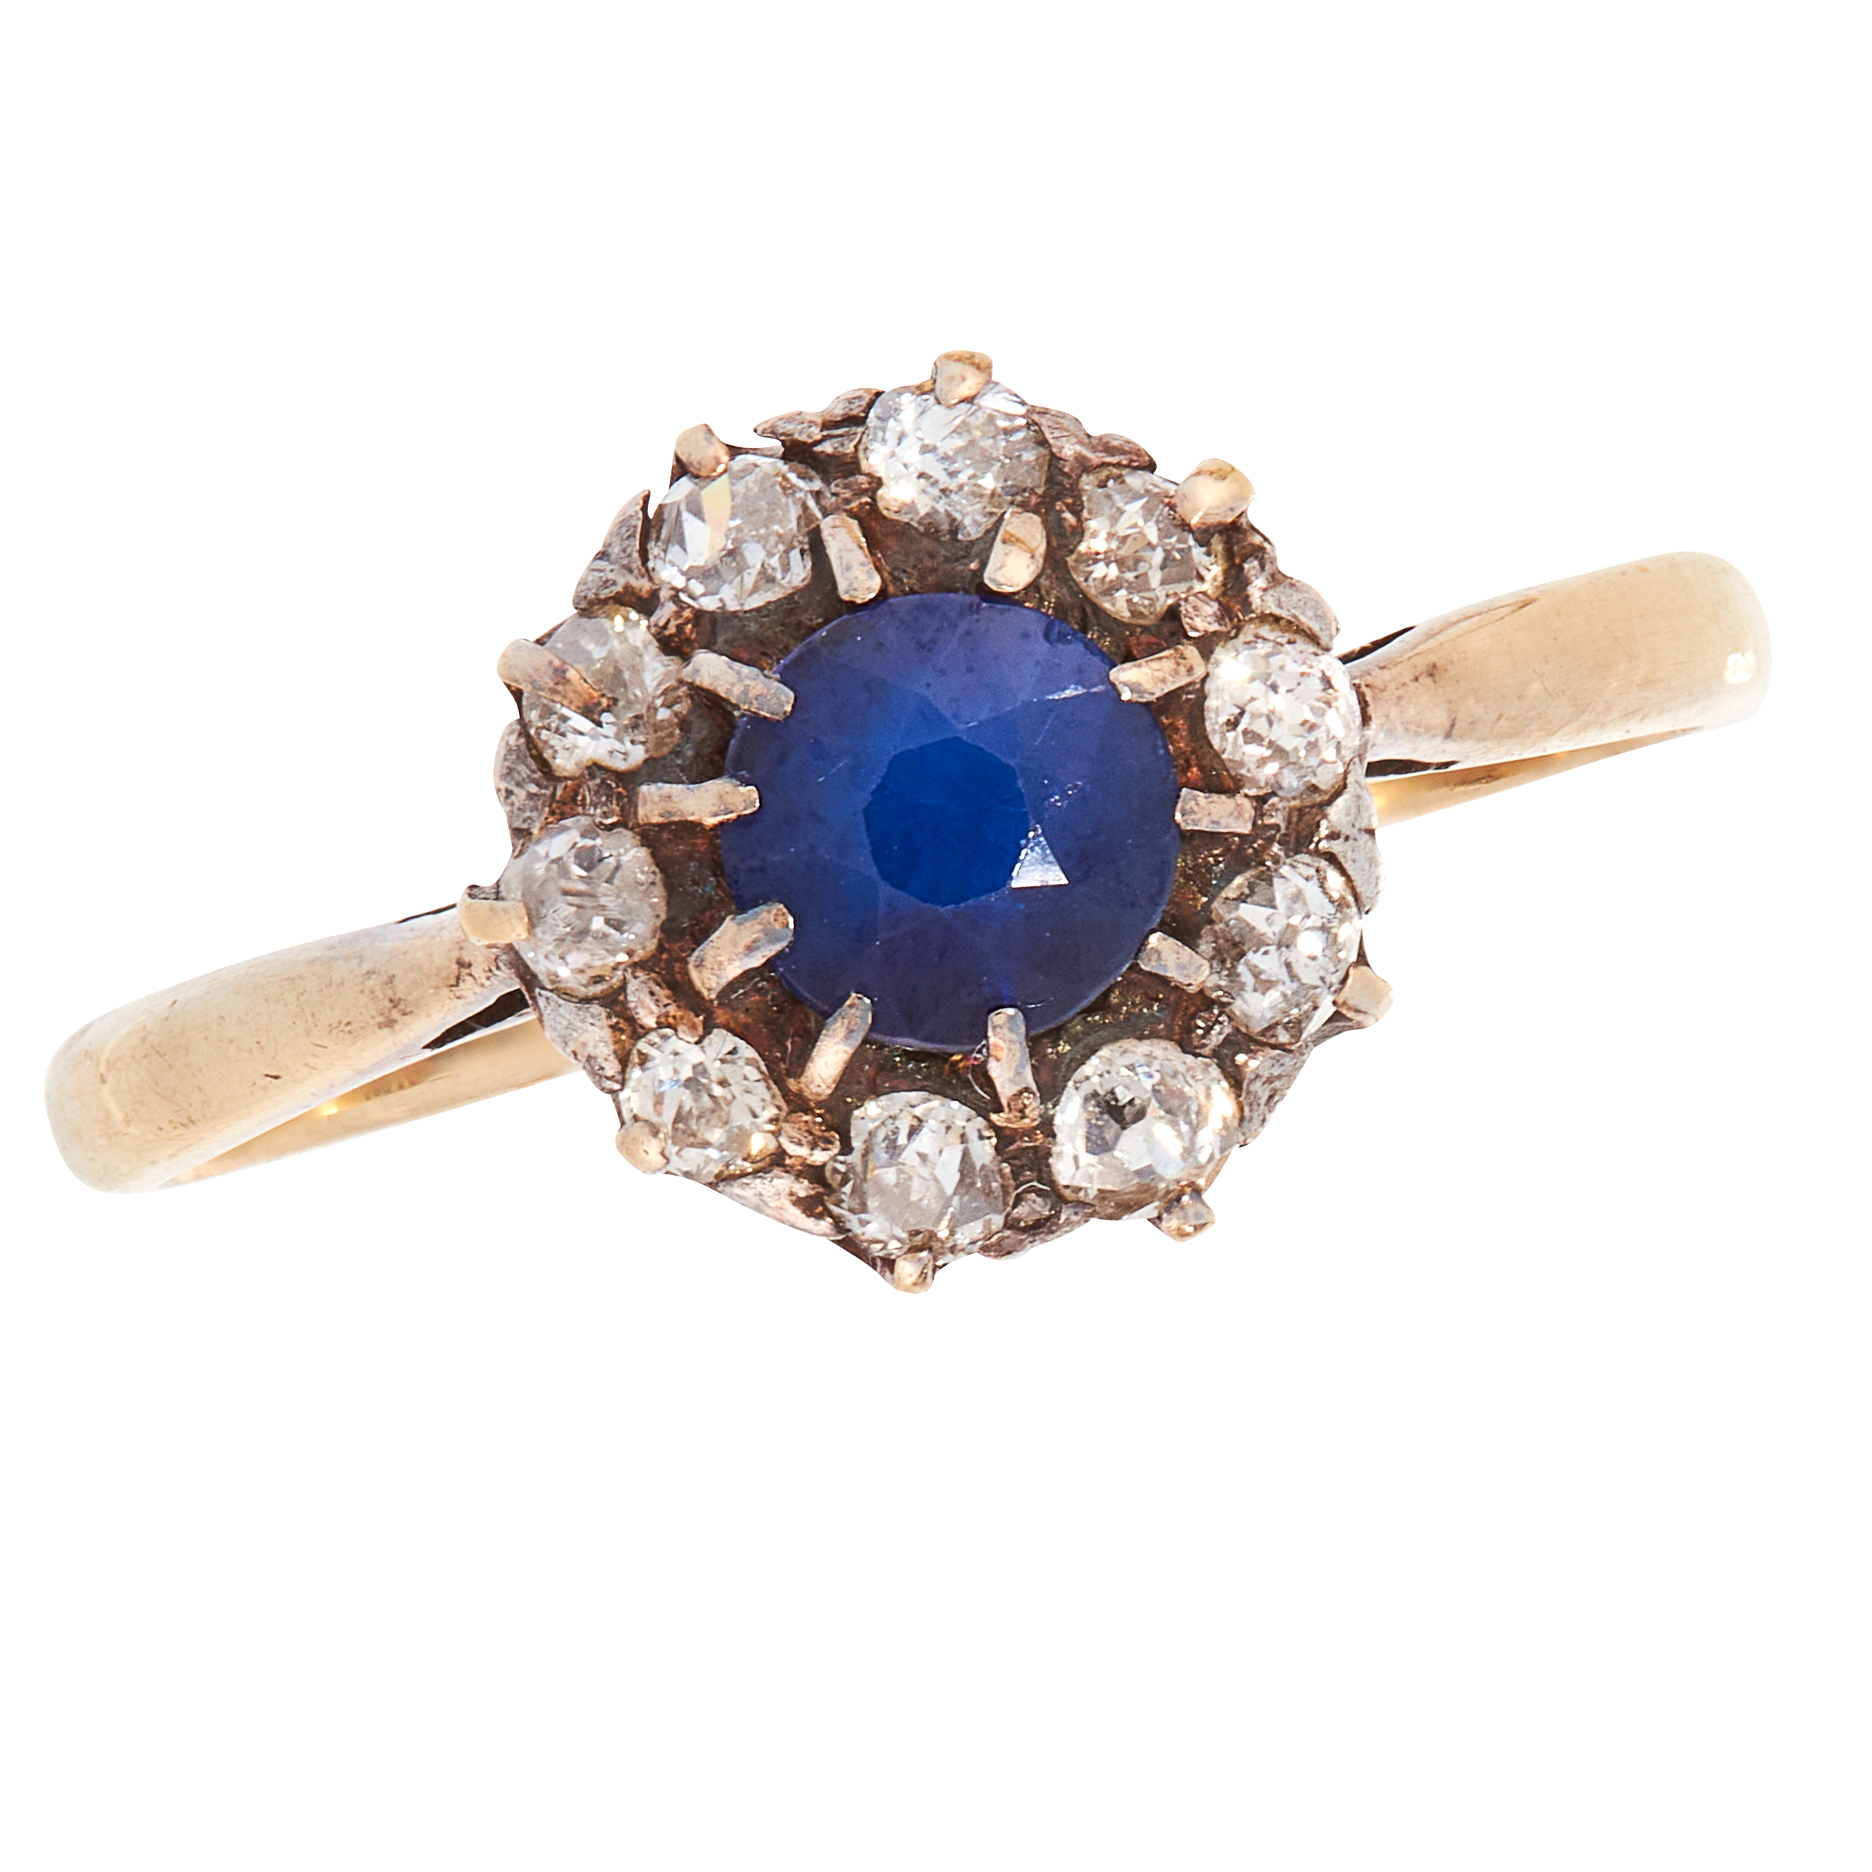 AN ANTIQUE SAPPHIRE AND DIAMOND DRESS RING in 18ct yellow gold, set with a round cut blue sapphire